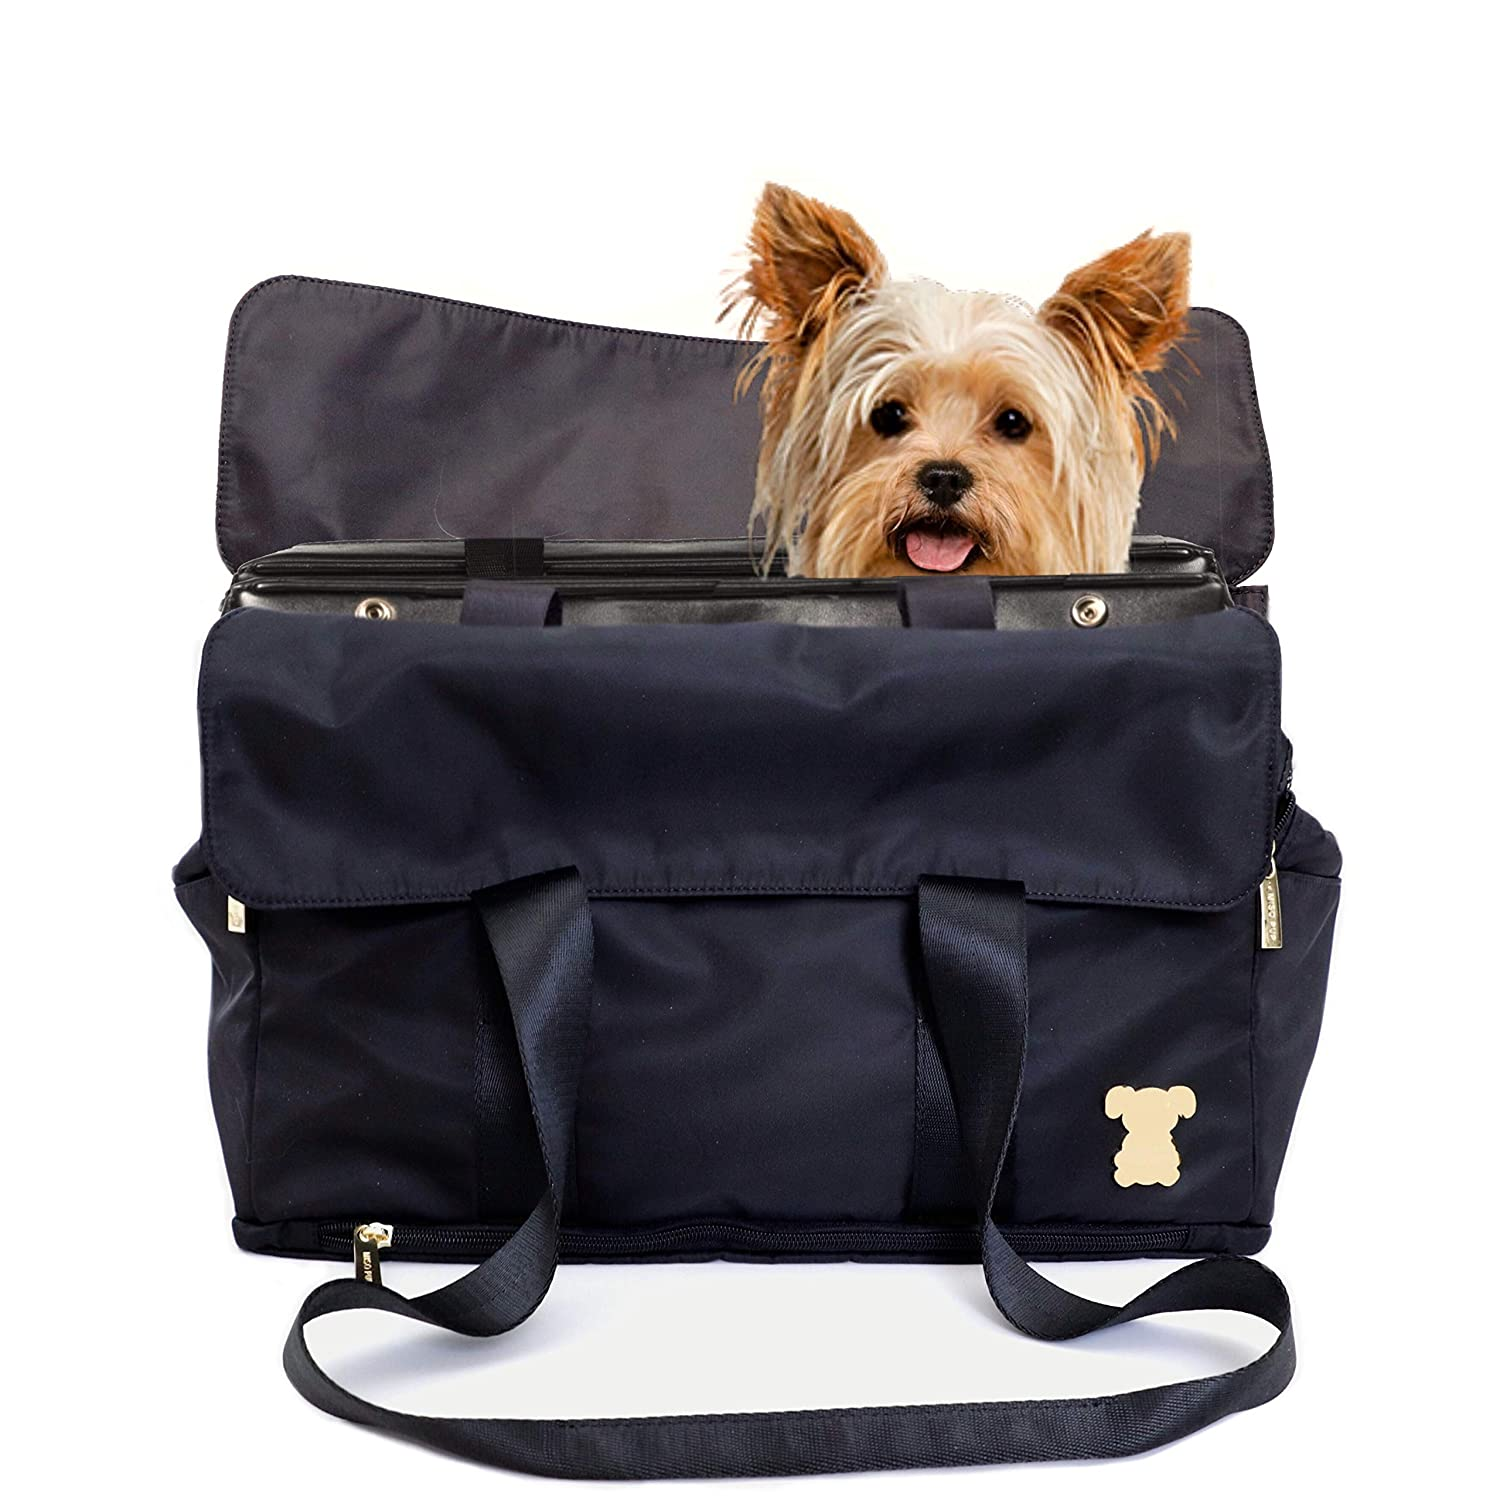 Pet Carrier MISO PUP Flap Tote Interchangeable Airline Approved Pet Carrier Combo with Large Document Pockets for Small Dogs (Pet Carrier Base & Shell Tote)